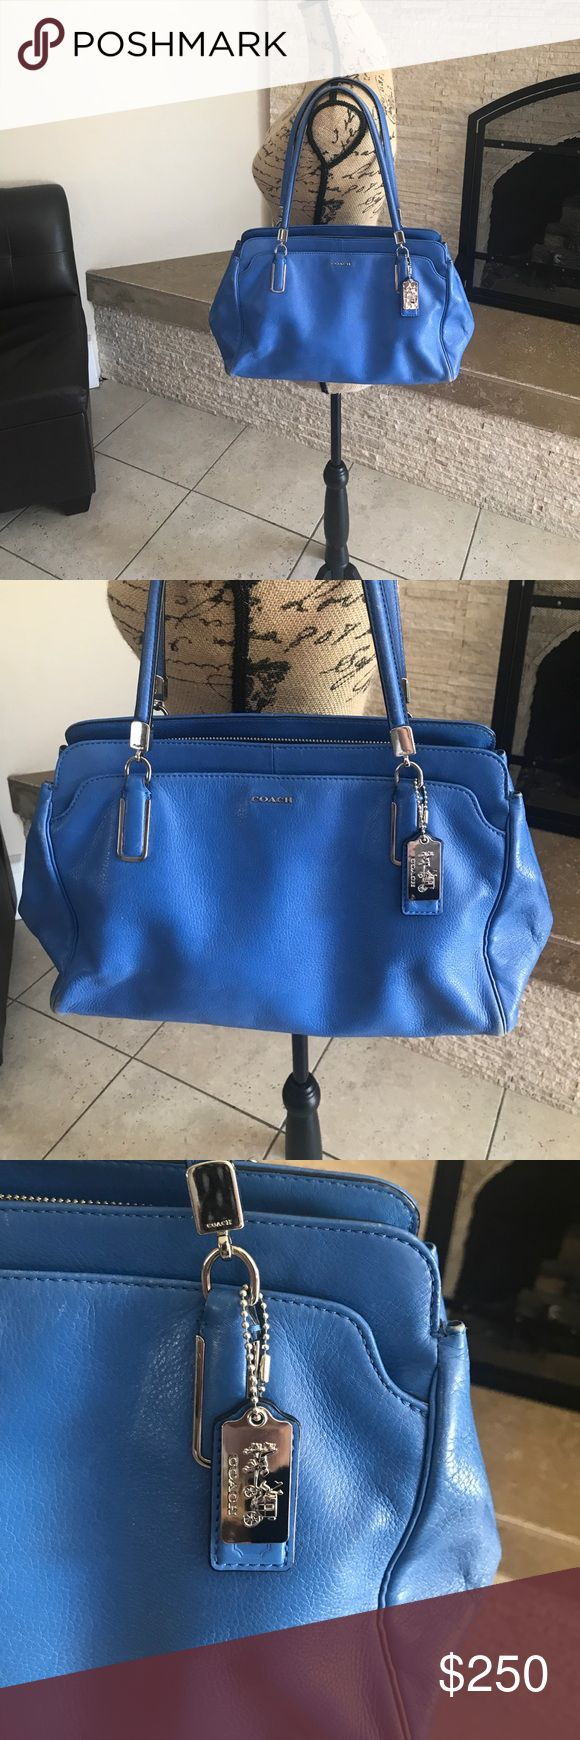 coach leather handbag COACH // cobalt blue beautiful Italian leather handbag // silver hardware // dustbag included // no feet on bottom // staining and wear as shown in photos on interiors, and corners/ straps - this is a GORGEOUS high end bag, purchased directly from website originally, the price reflects wear- bundle for 20% off! Coach Bags Shoulder Bags